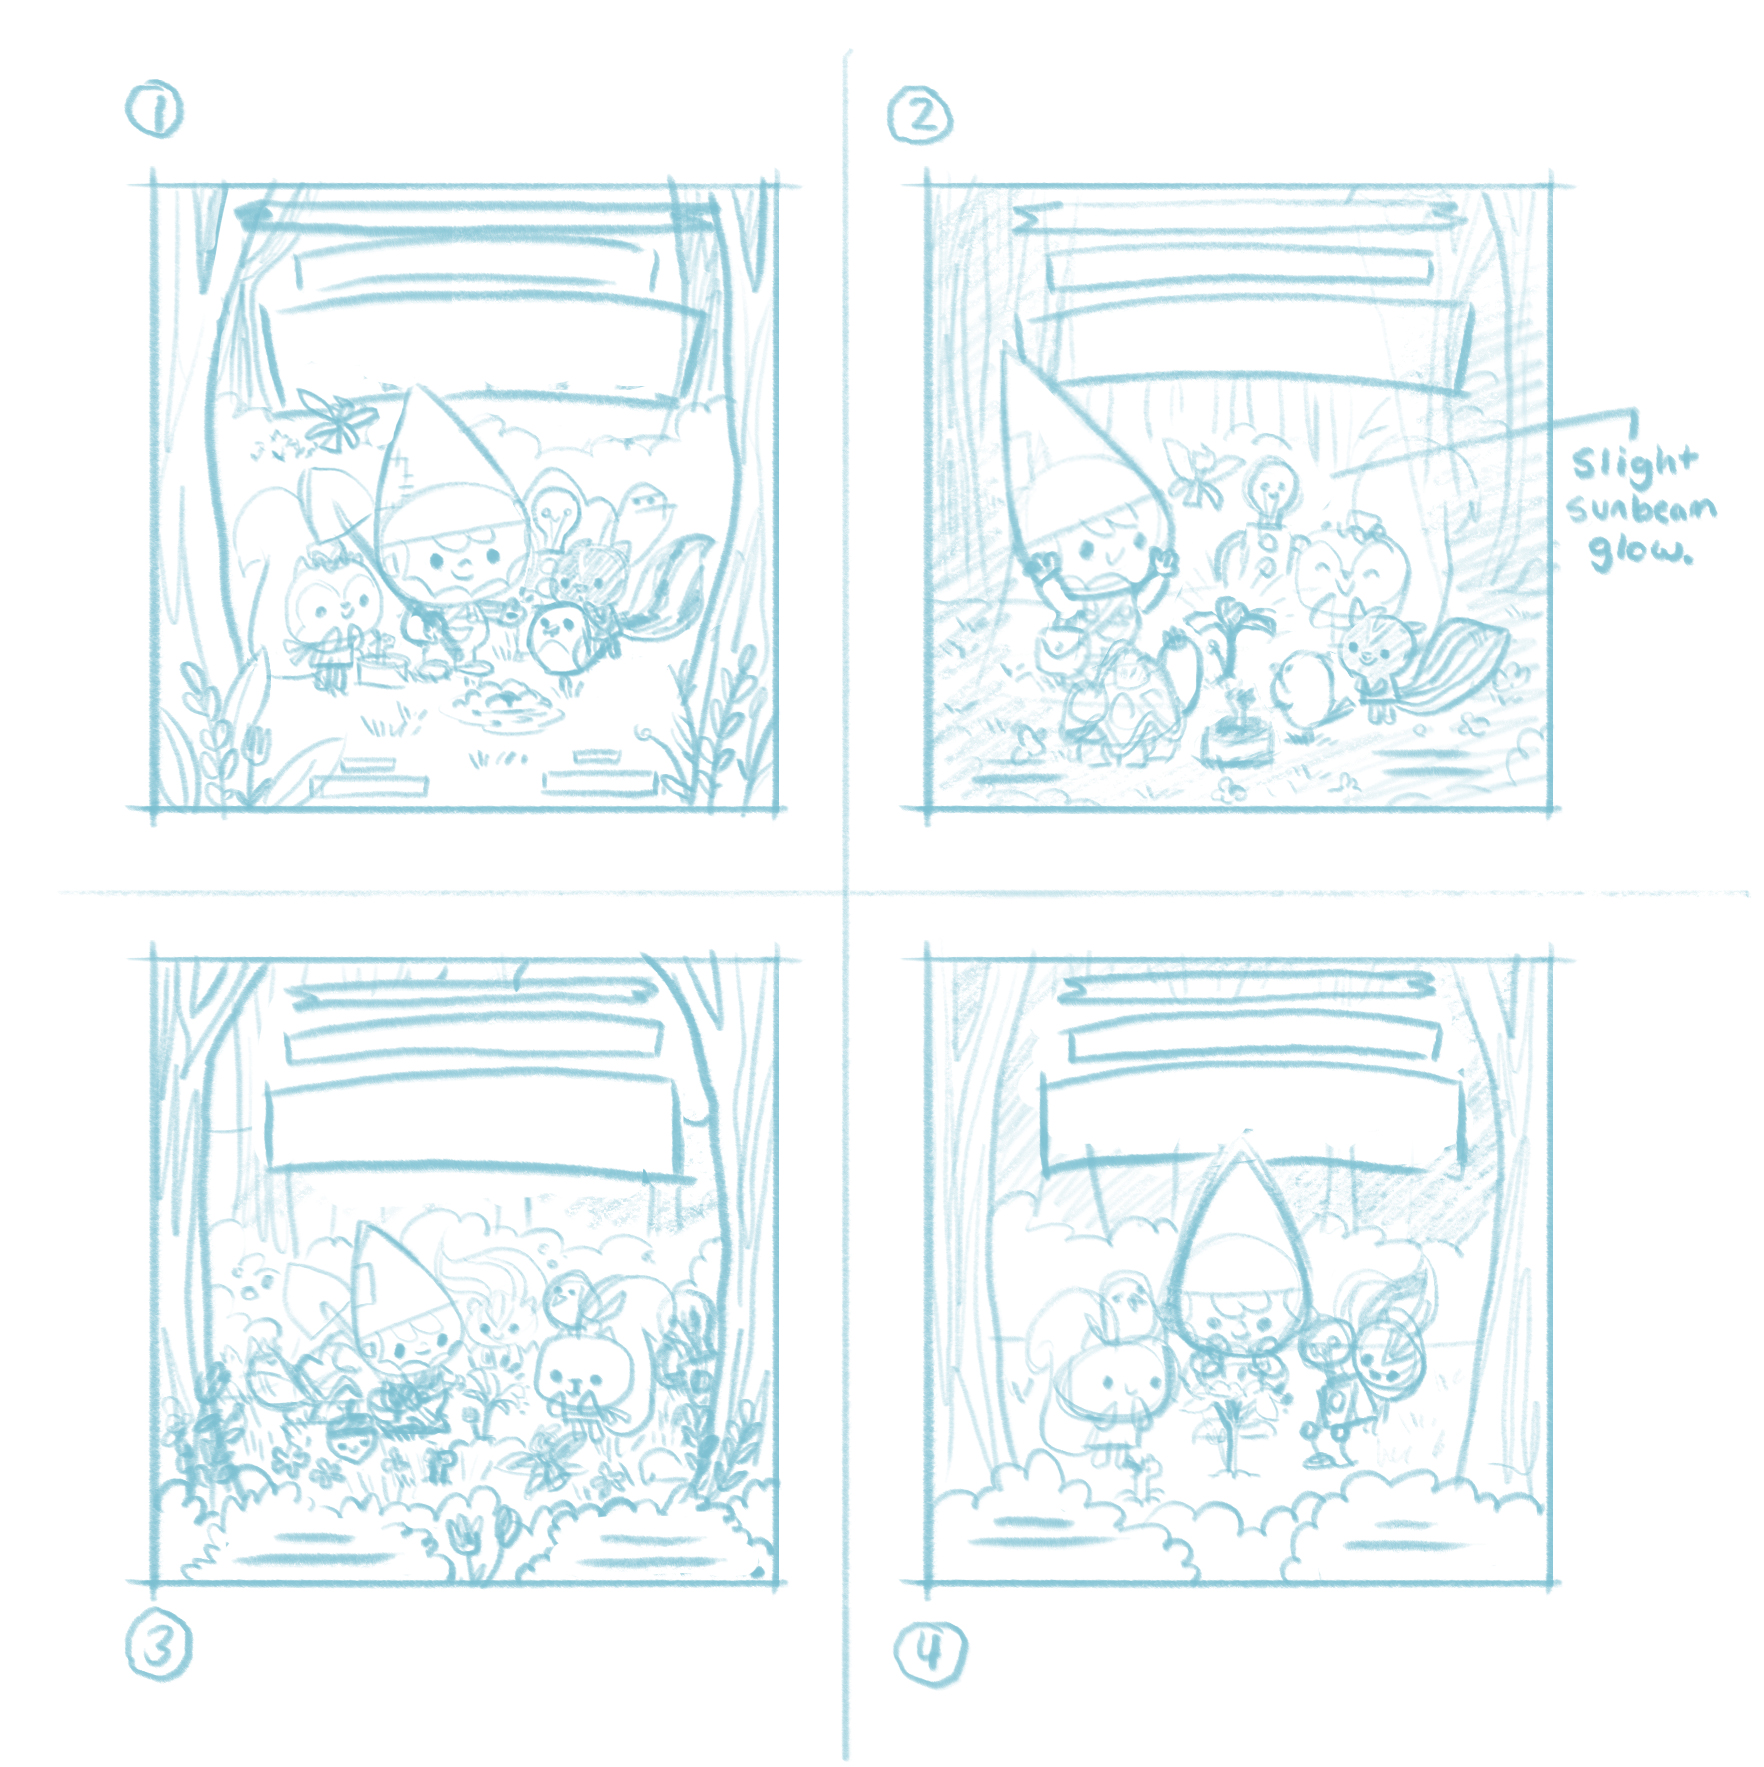 Rough-Cover-Sketches.jpg